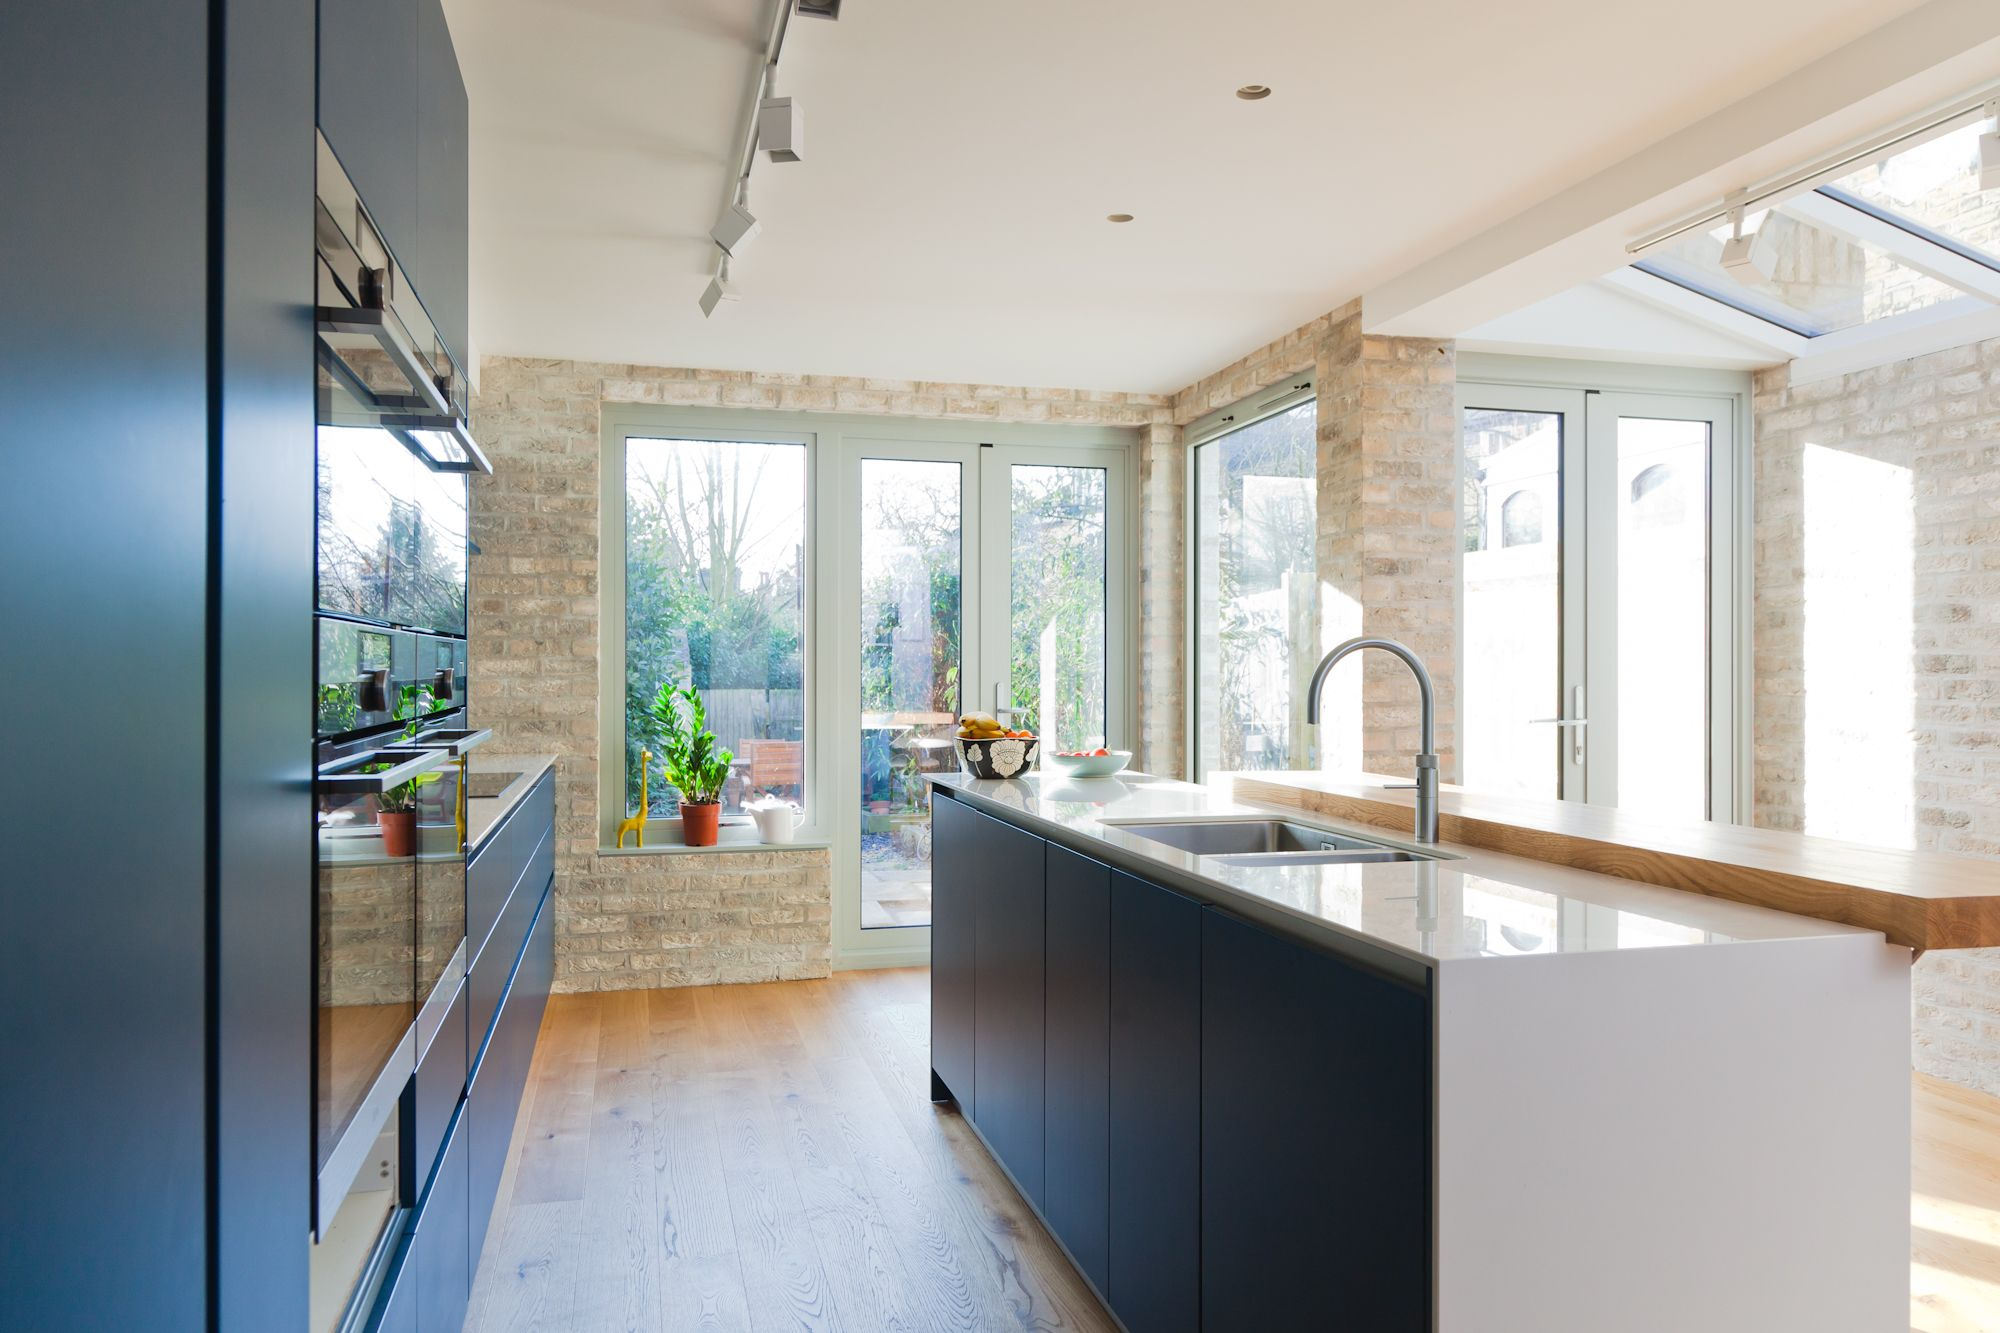 Contemporary, light kitchen. Puccini Kitchens. Exposed brick wall ...